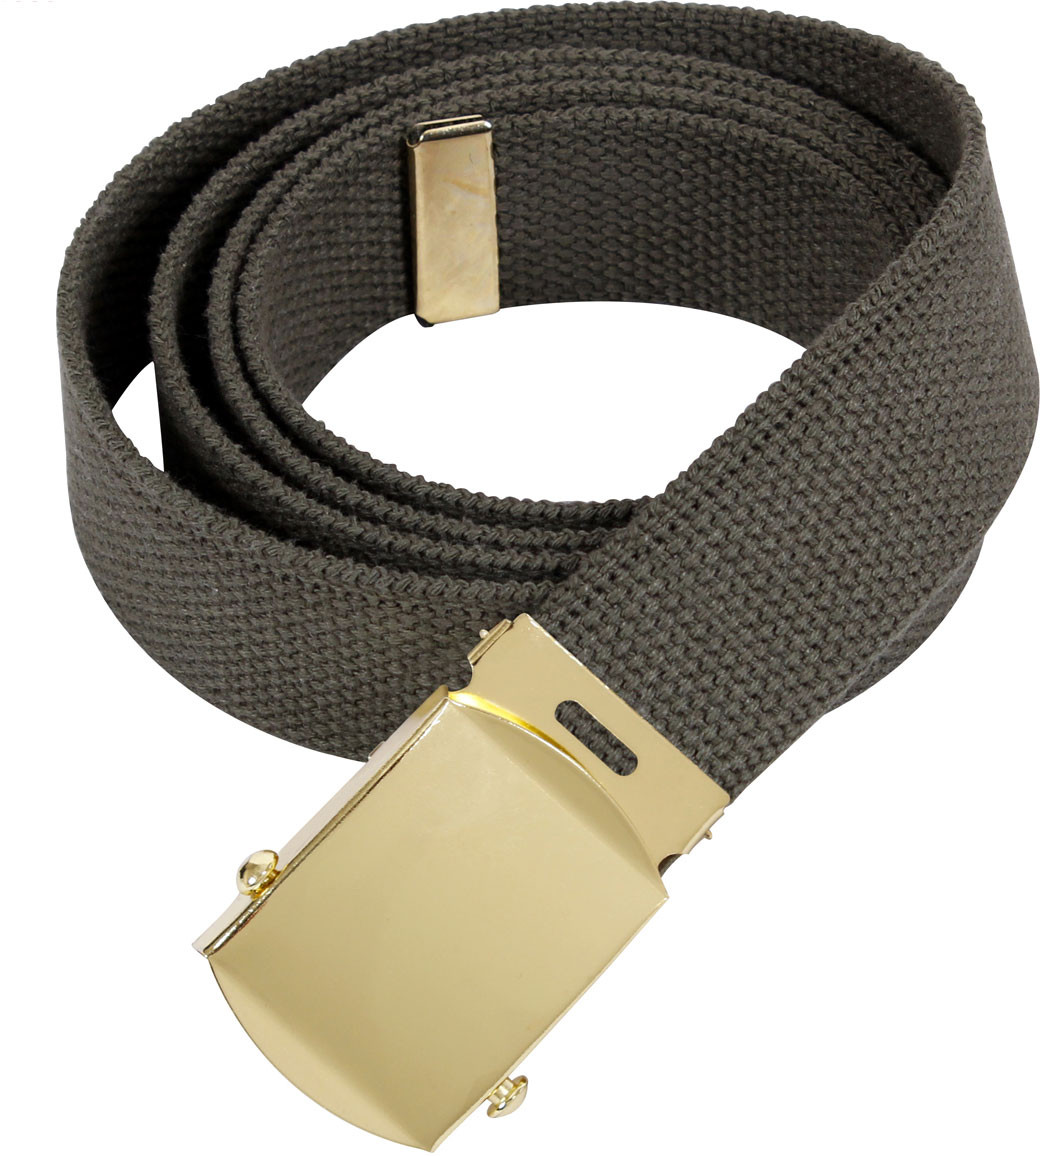 Olive Drab Military Web Belt with Brass Buckle d9ecefa45